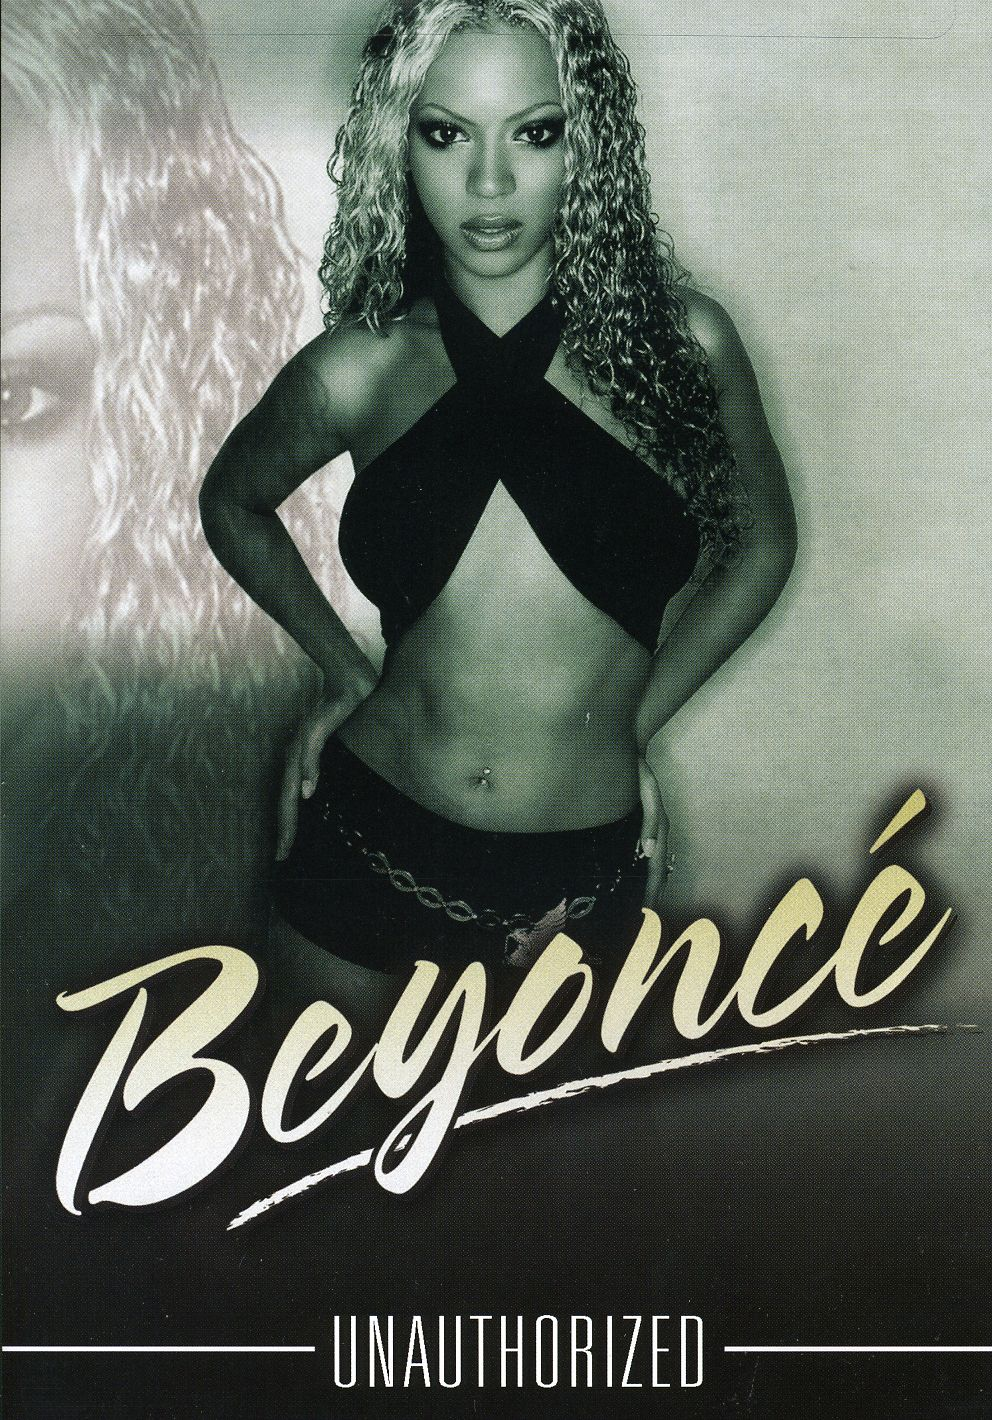 Beyonce: Unauthorized (DVD)